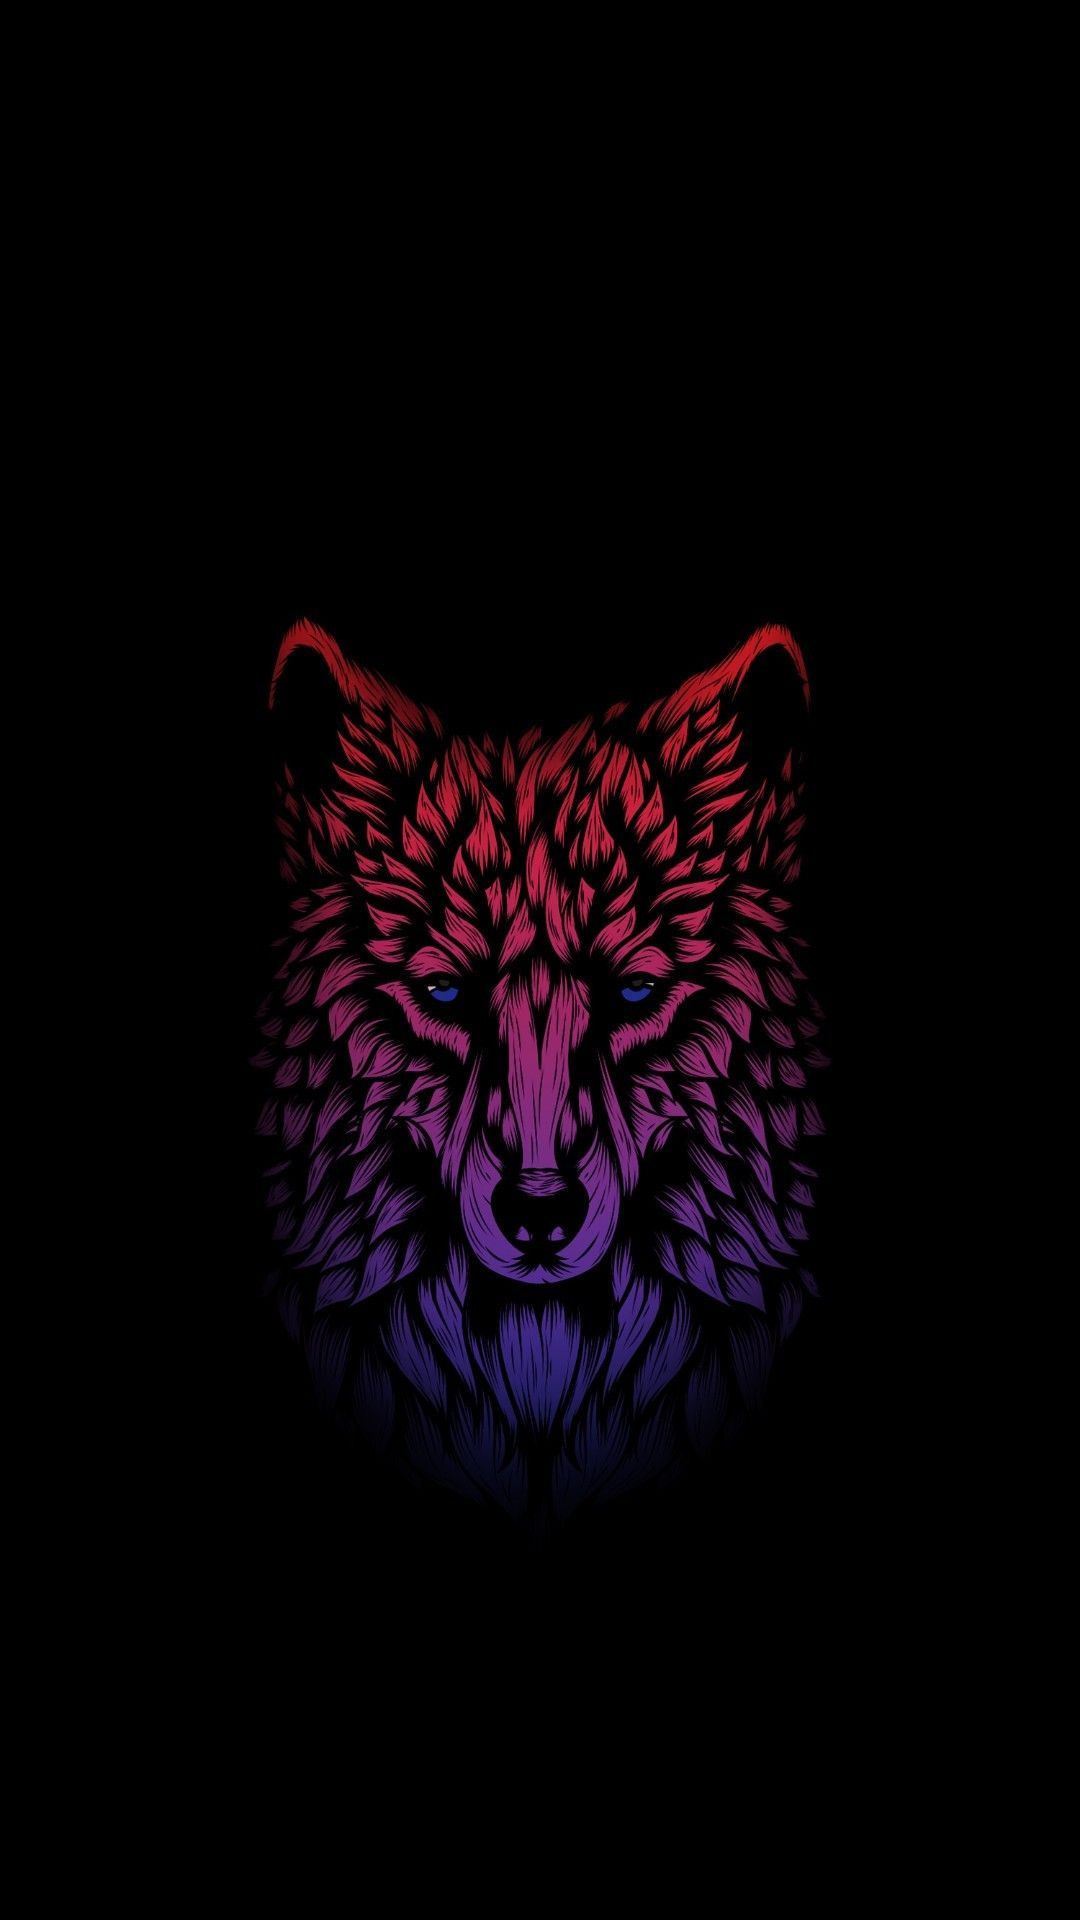 Wolf Geometric - Android, iPhone, Desktop HD Backgrounds / Wallpapers (1080p, 4k) (197164) - 3D / Abstract